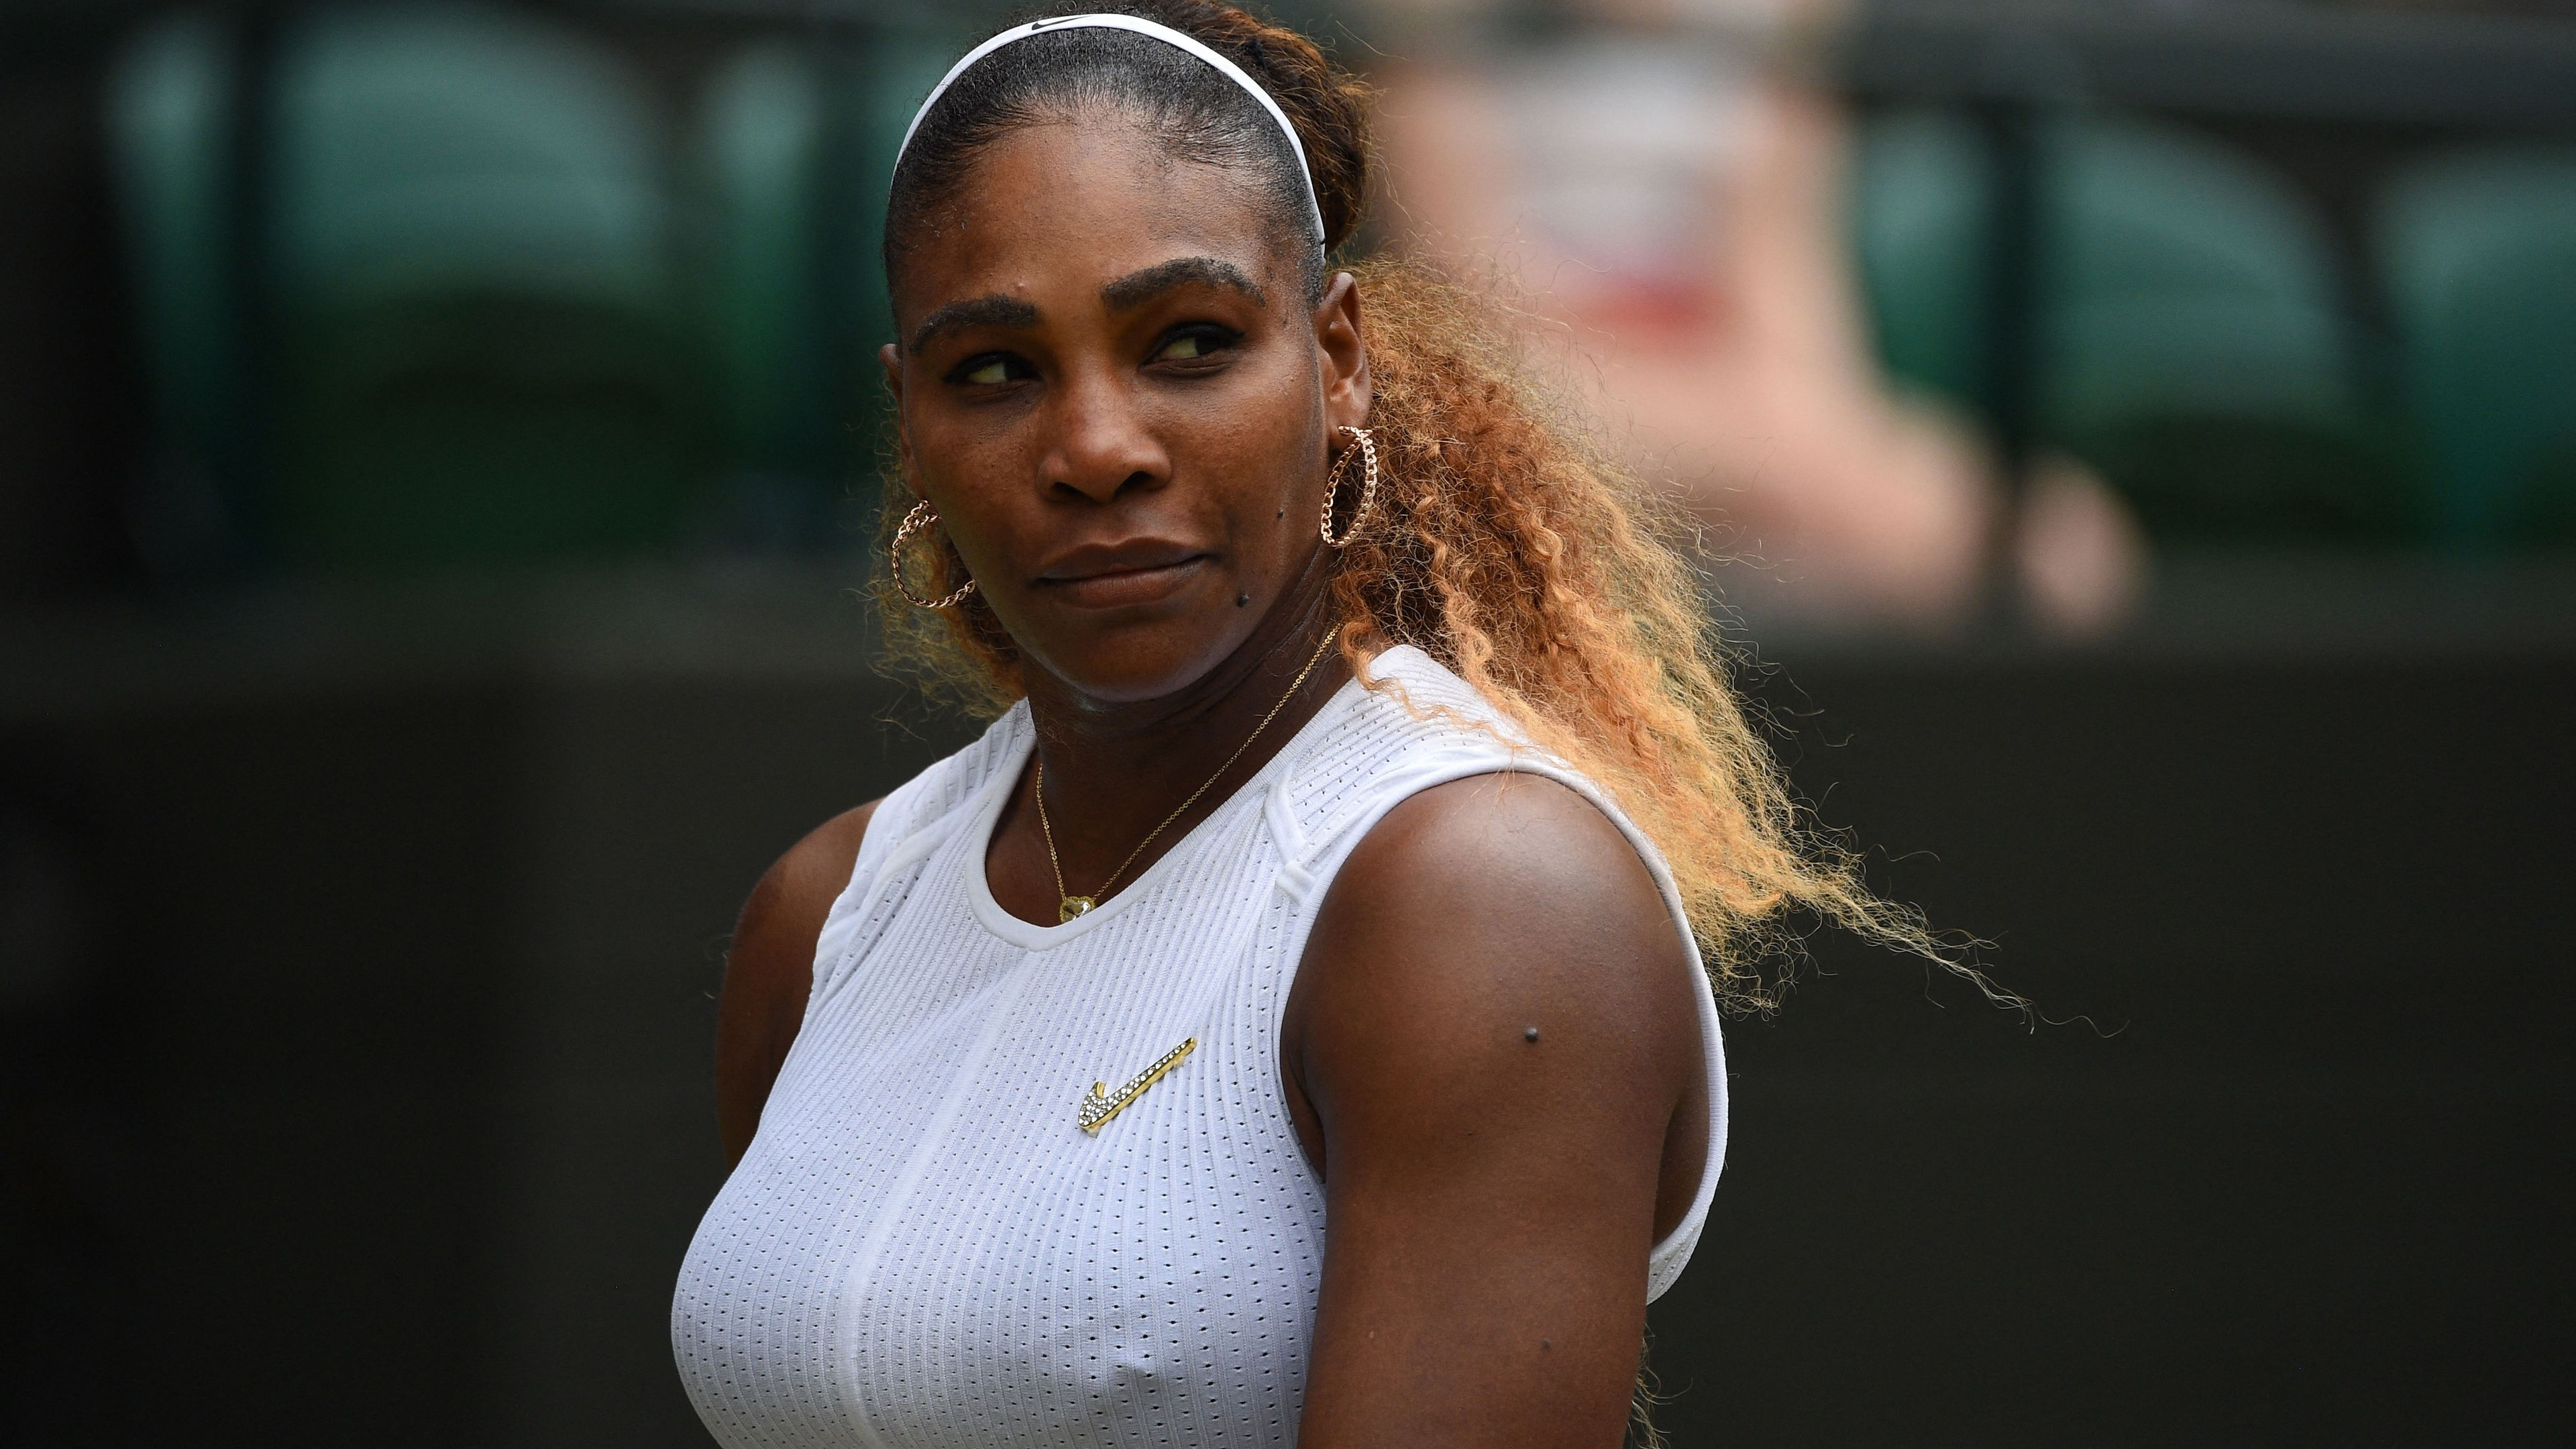 Peter FitzSimons defends Serena Williams over Ash Barty Wimbledon snub